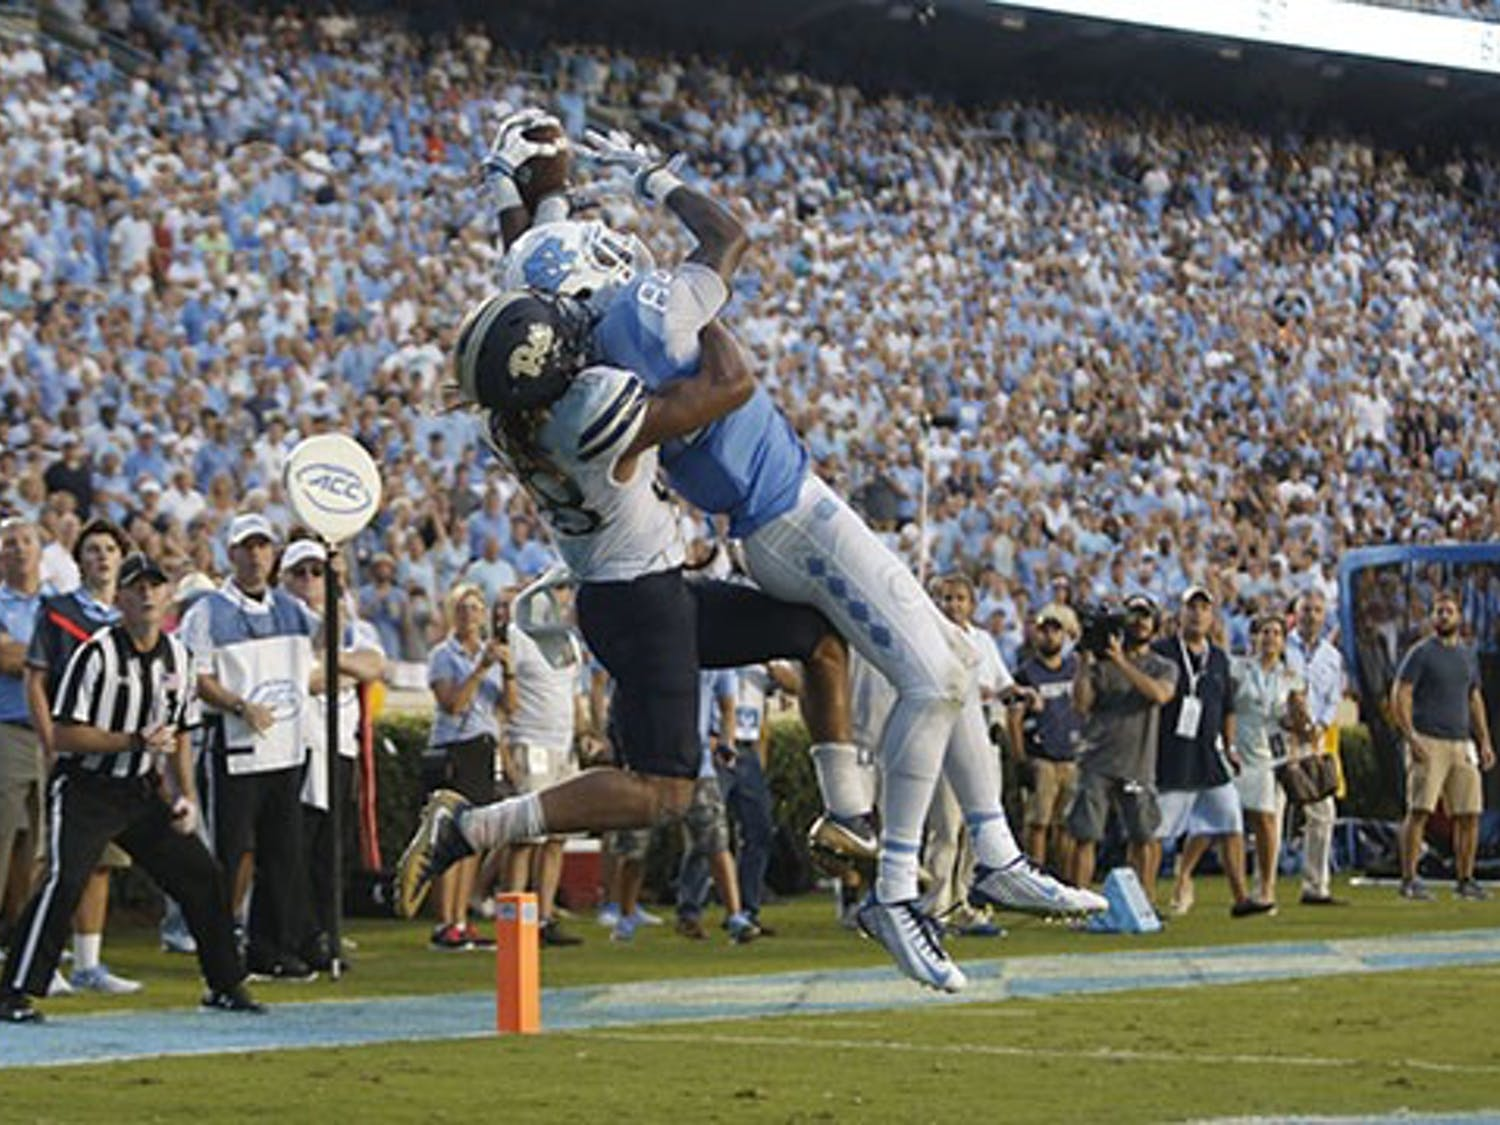 UNC wide receiver Bug Howard catches the game winning touchdown with two seconds remaining in regulation against Pitt.